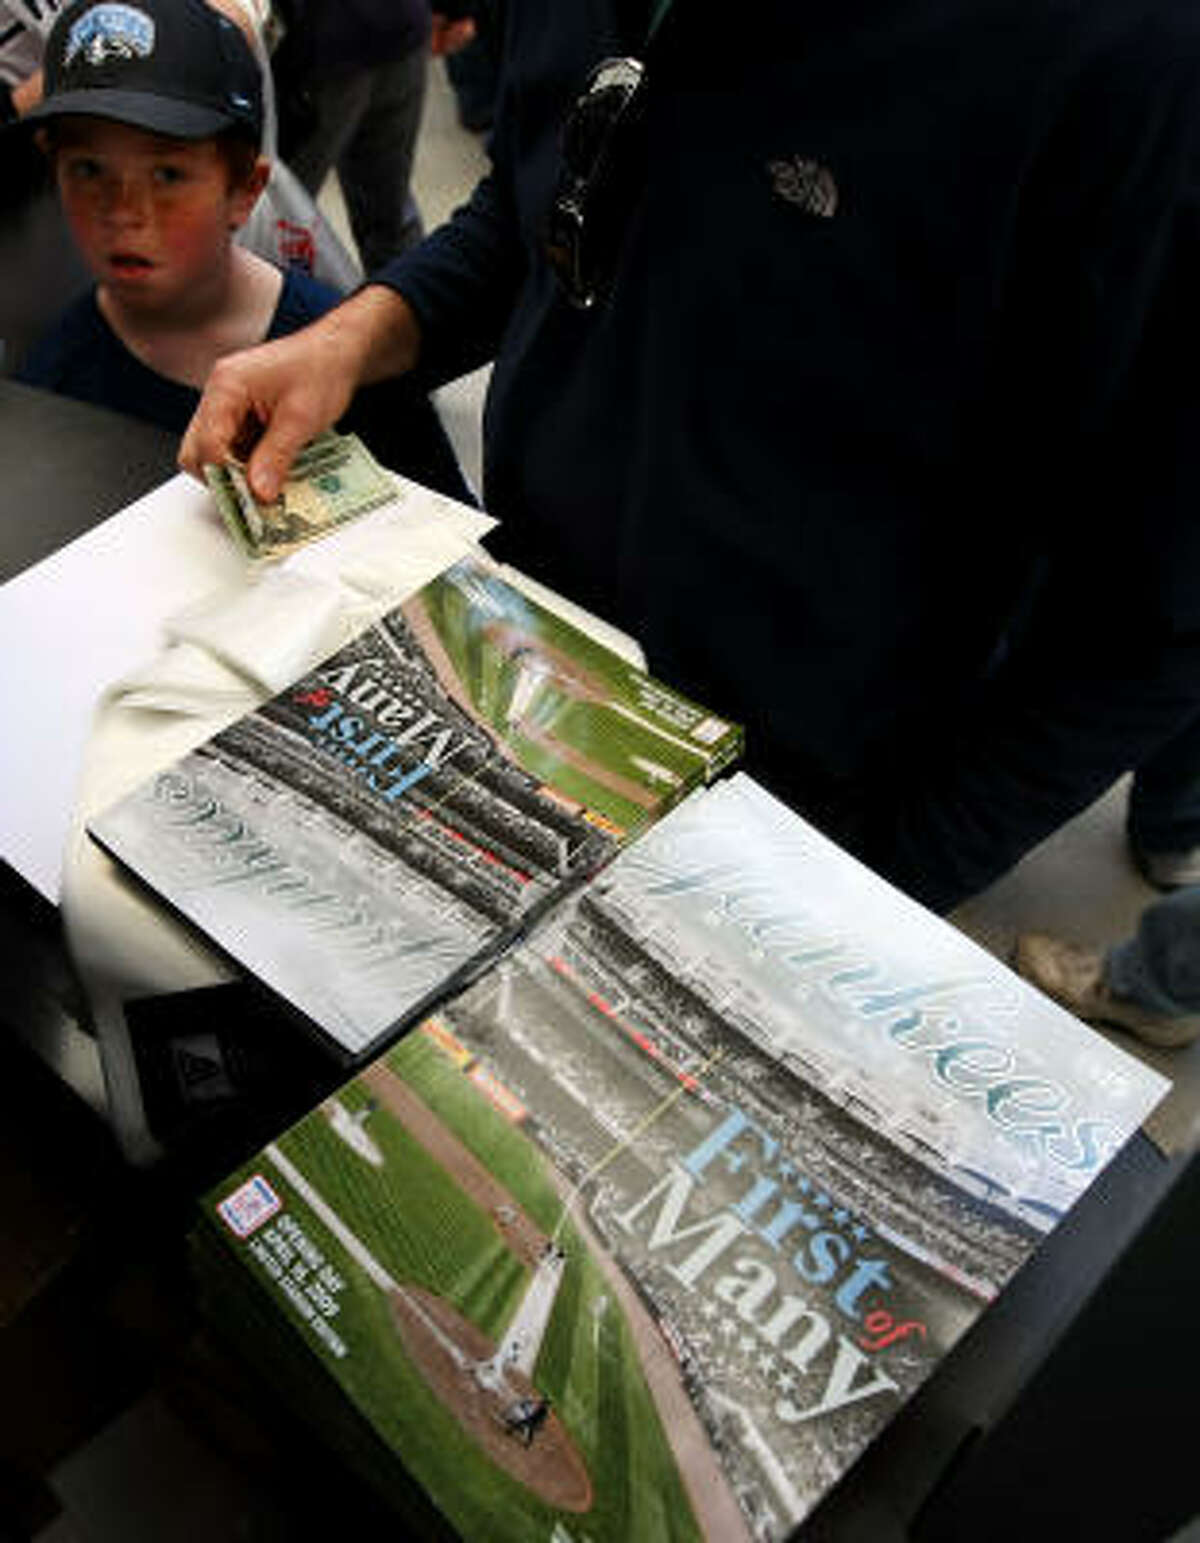 A fan buys a program before the game.